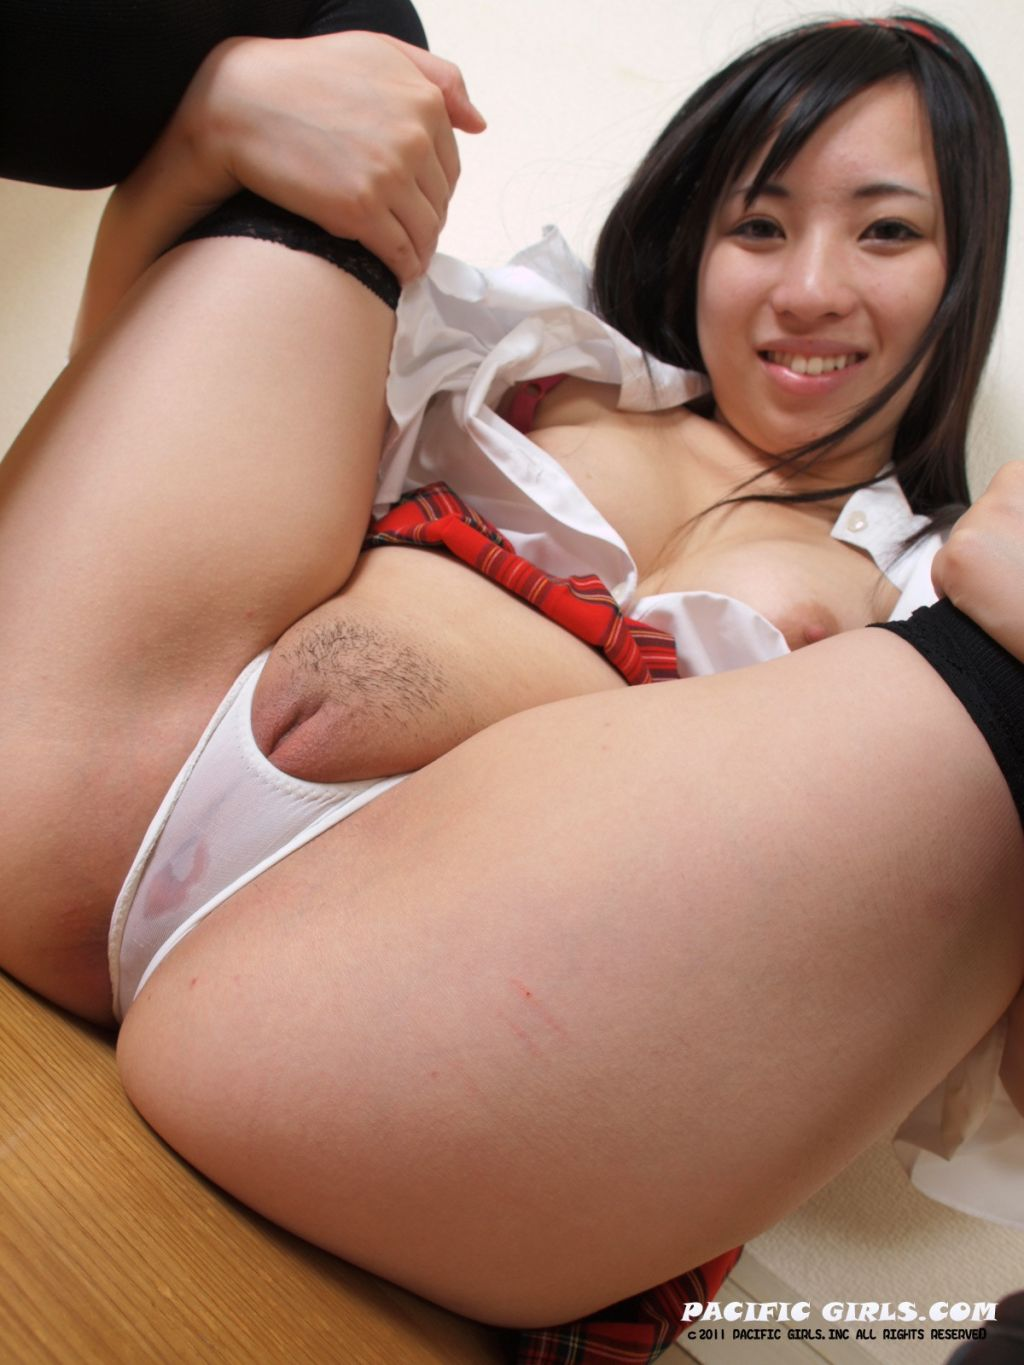 asian panties woman Butt